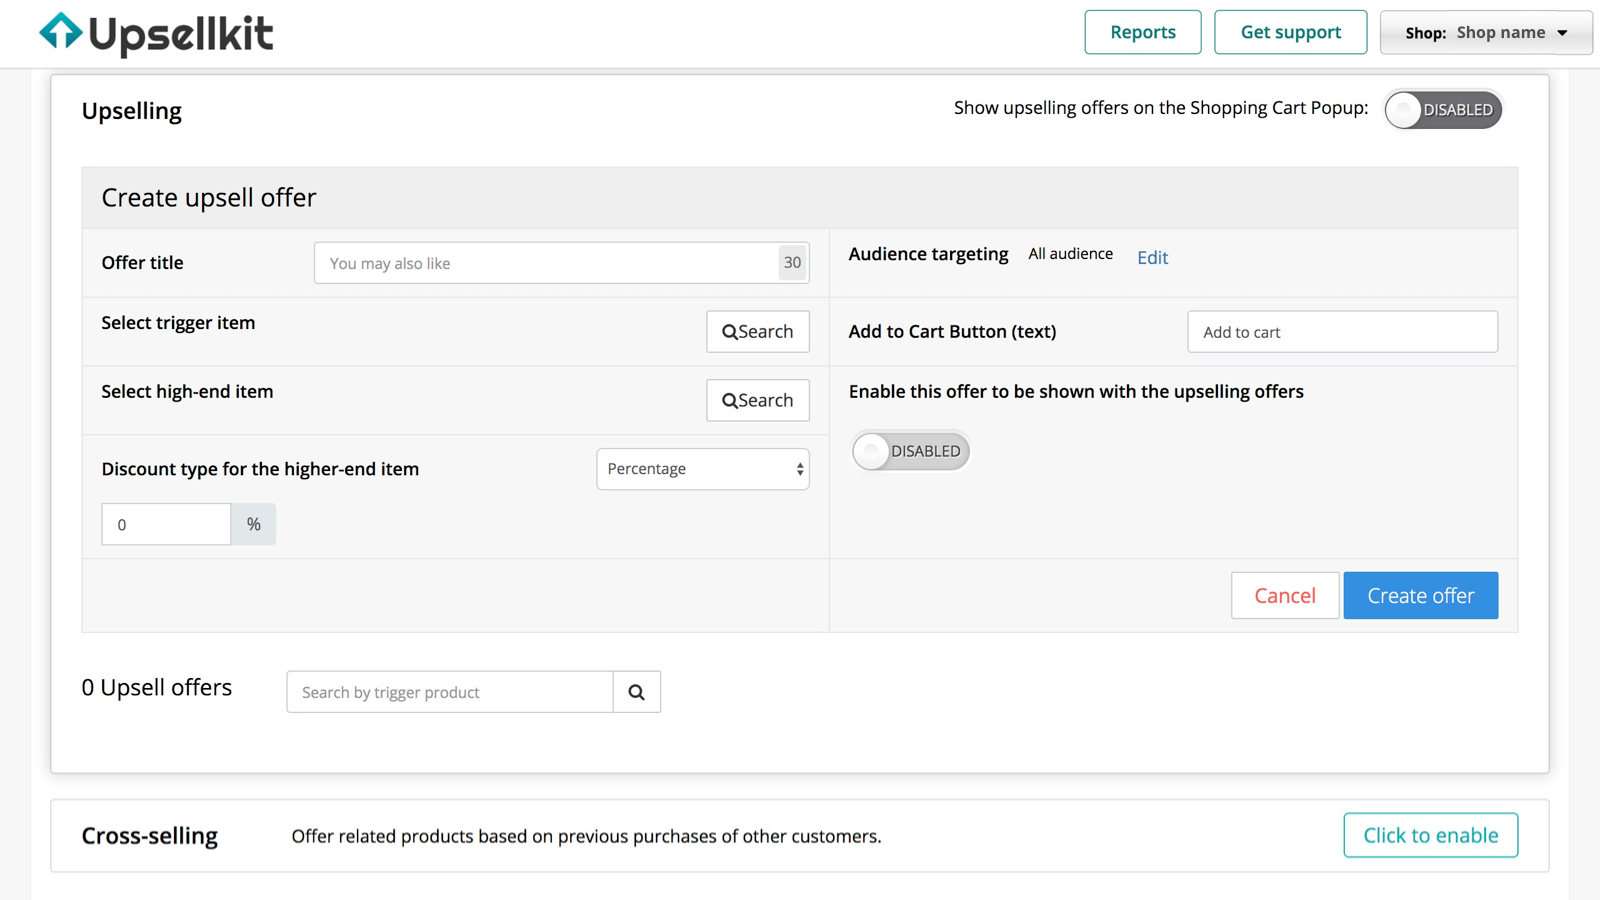 Pre-built workflow to create upselling offers